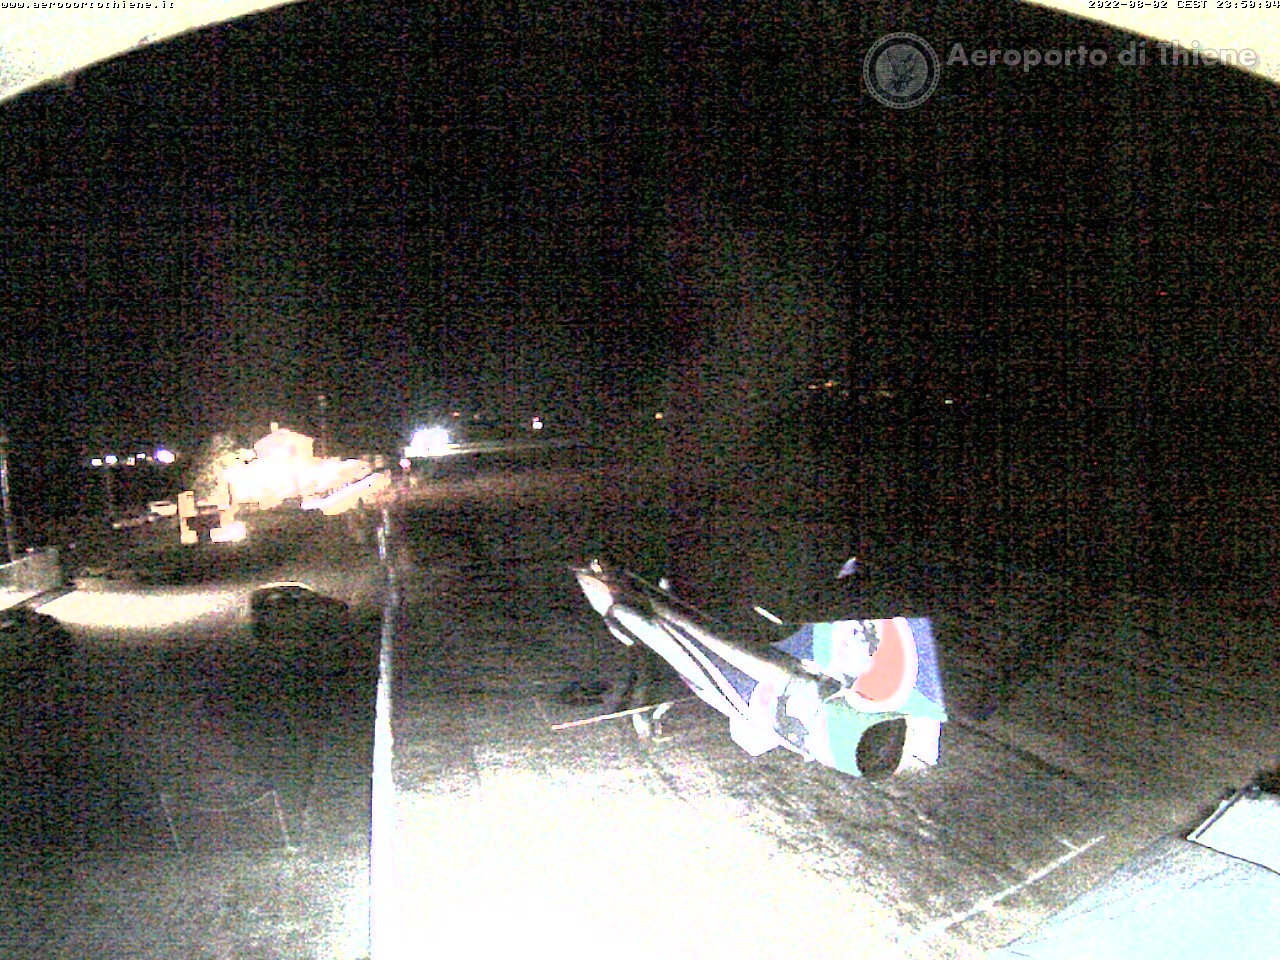 Webcam Nord (North)